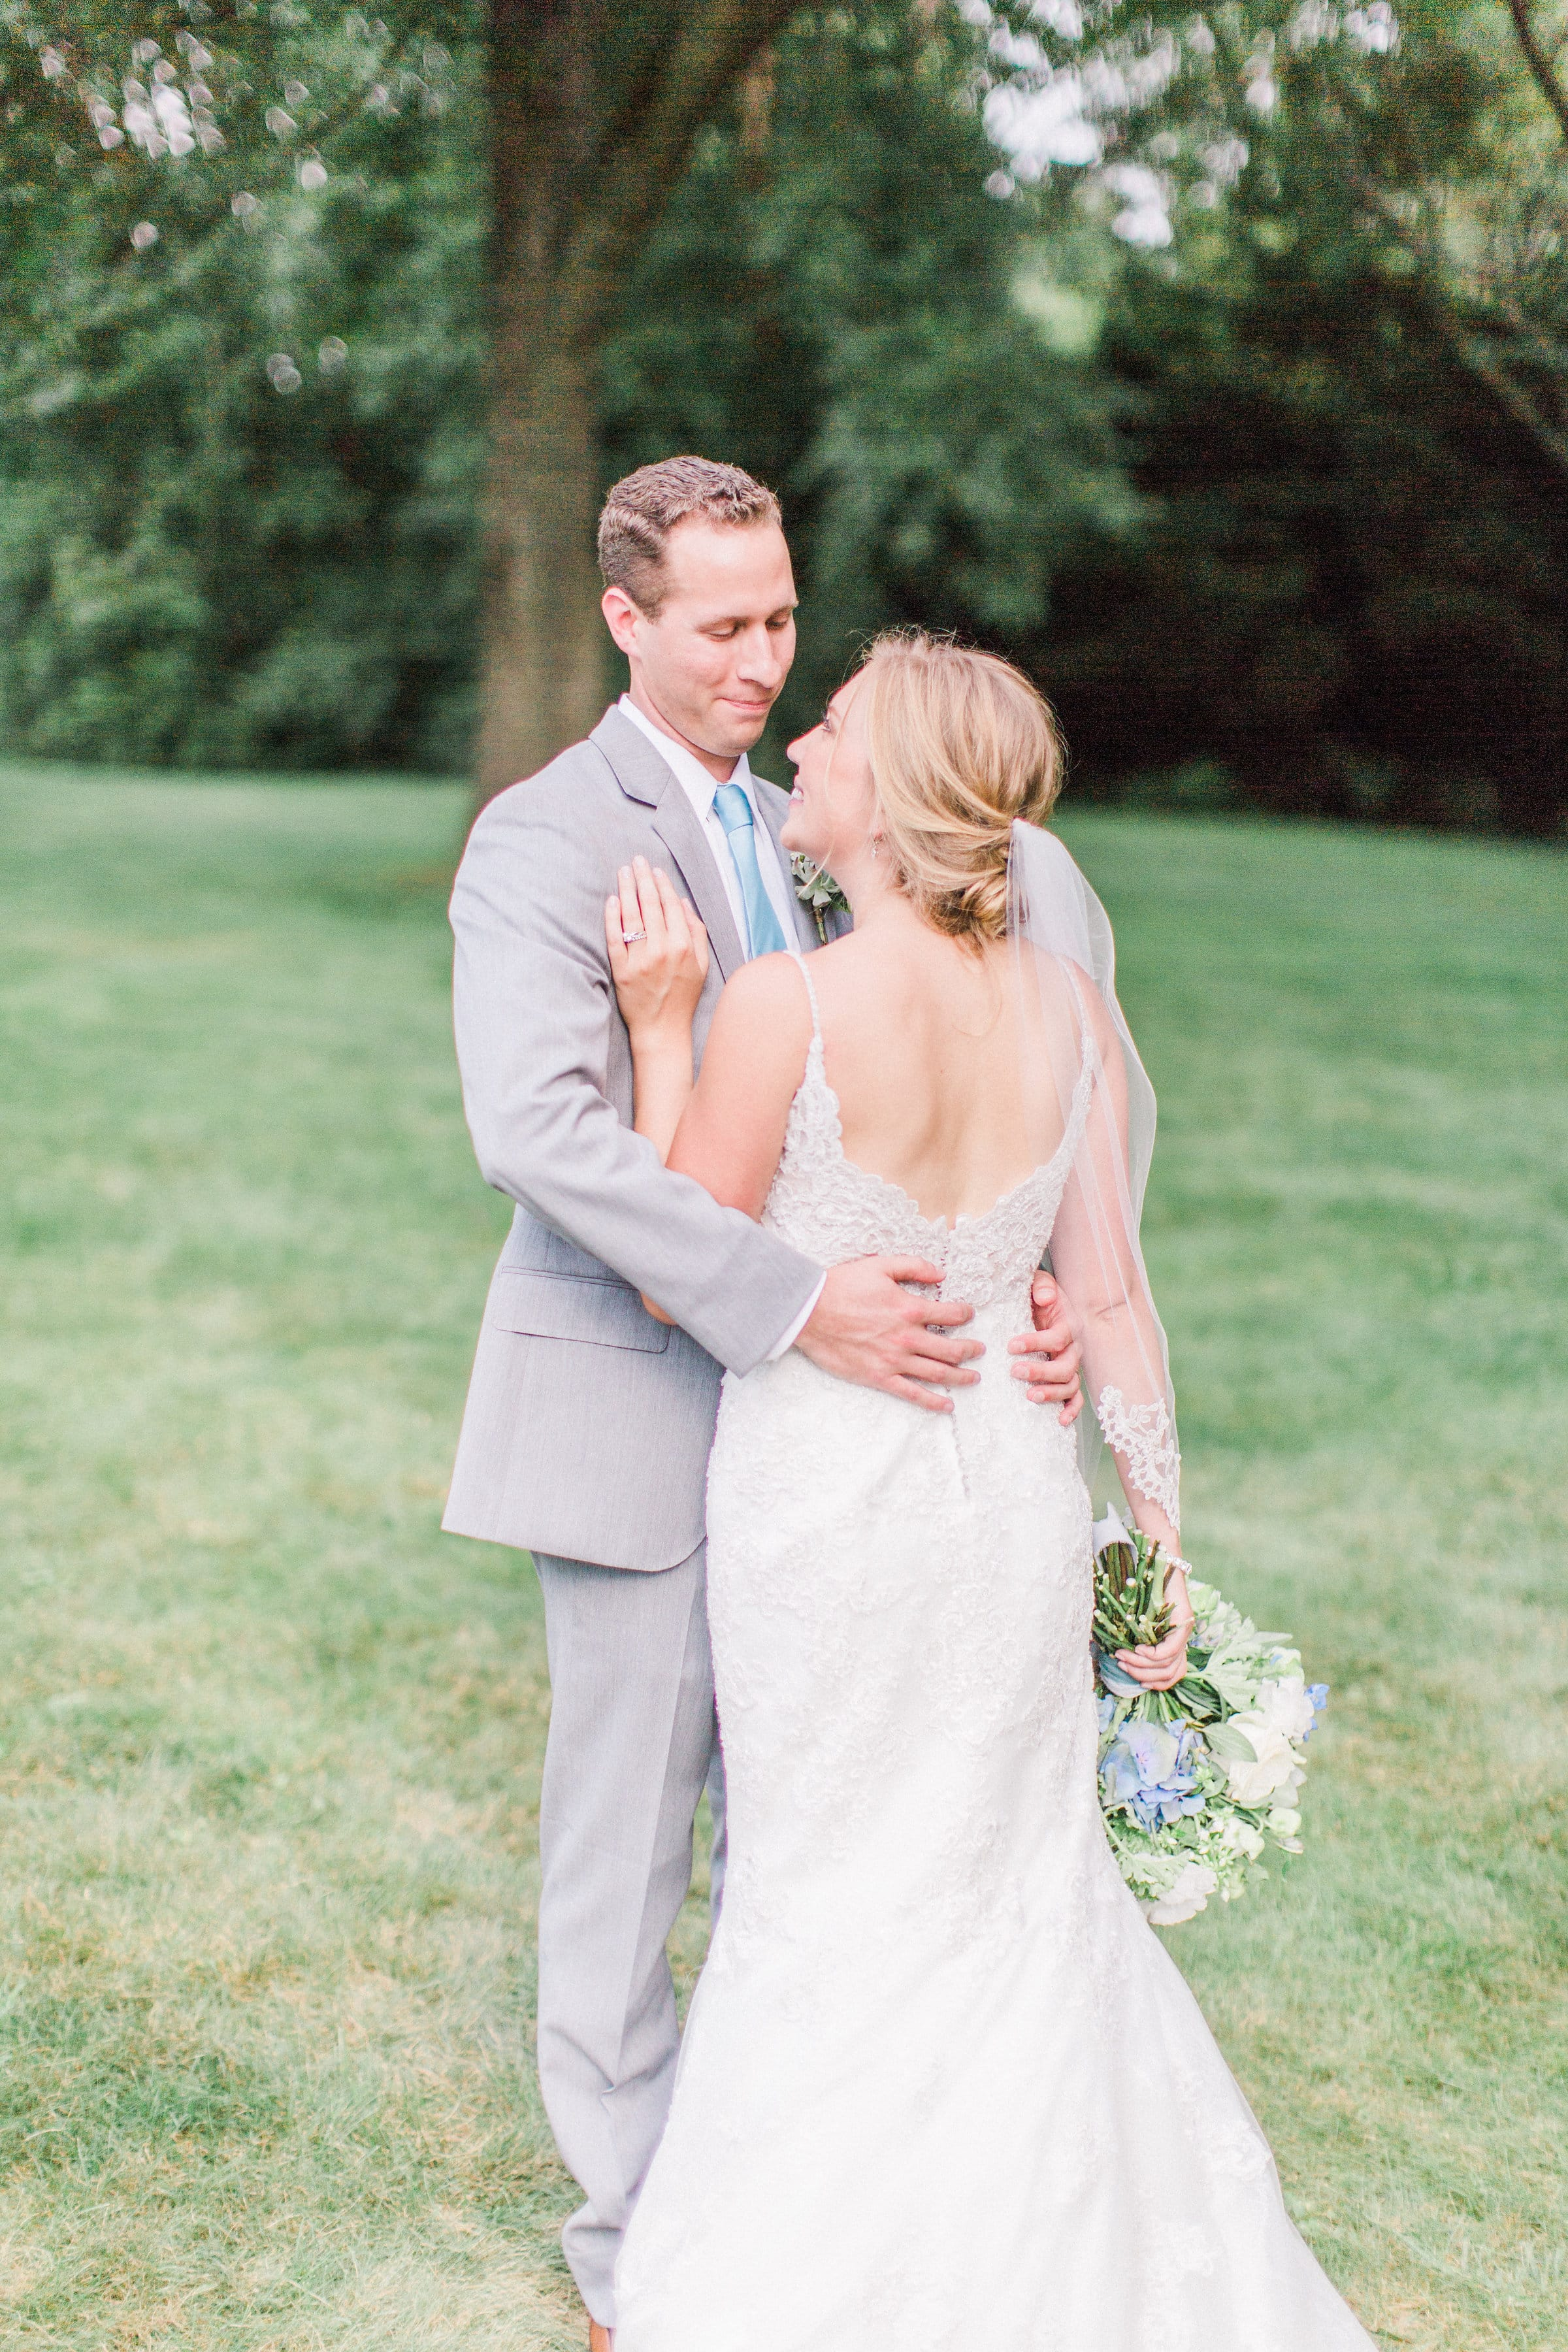 Real wedding Featuring Rebecca Ingram bride wearing Drew. This #rebeccabride had both parents walk her down the aisle!